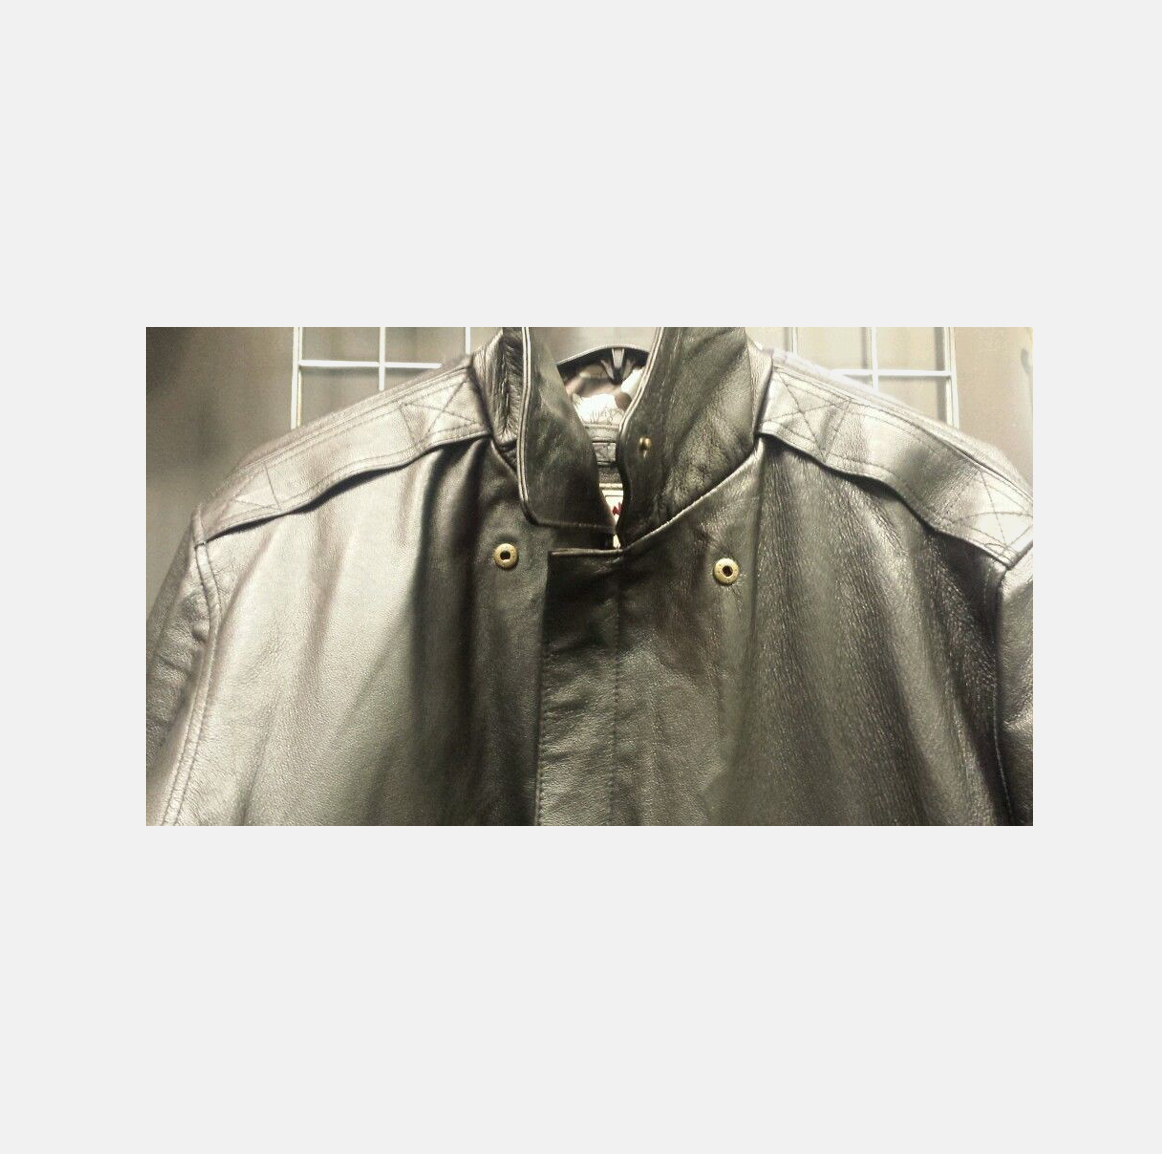 Cow Leather Jackets Men sale